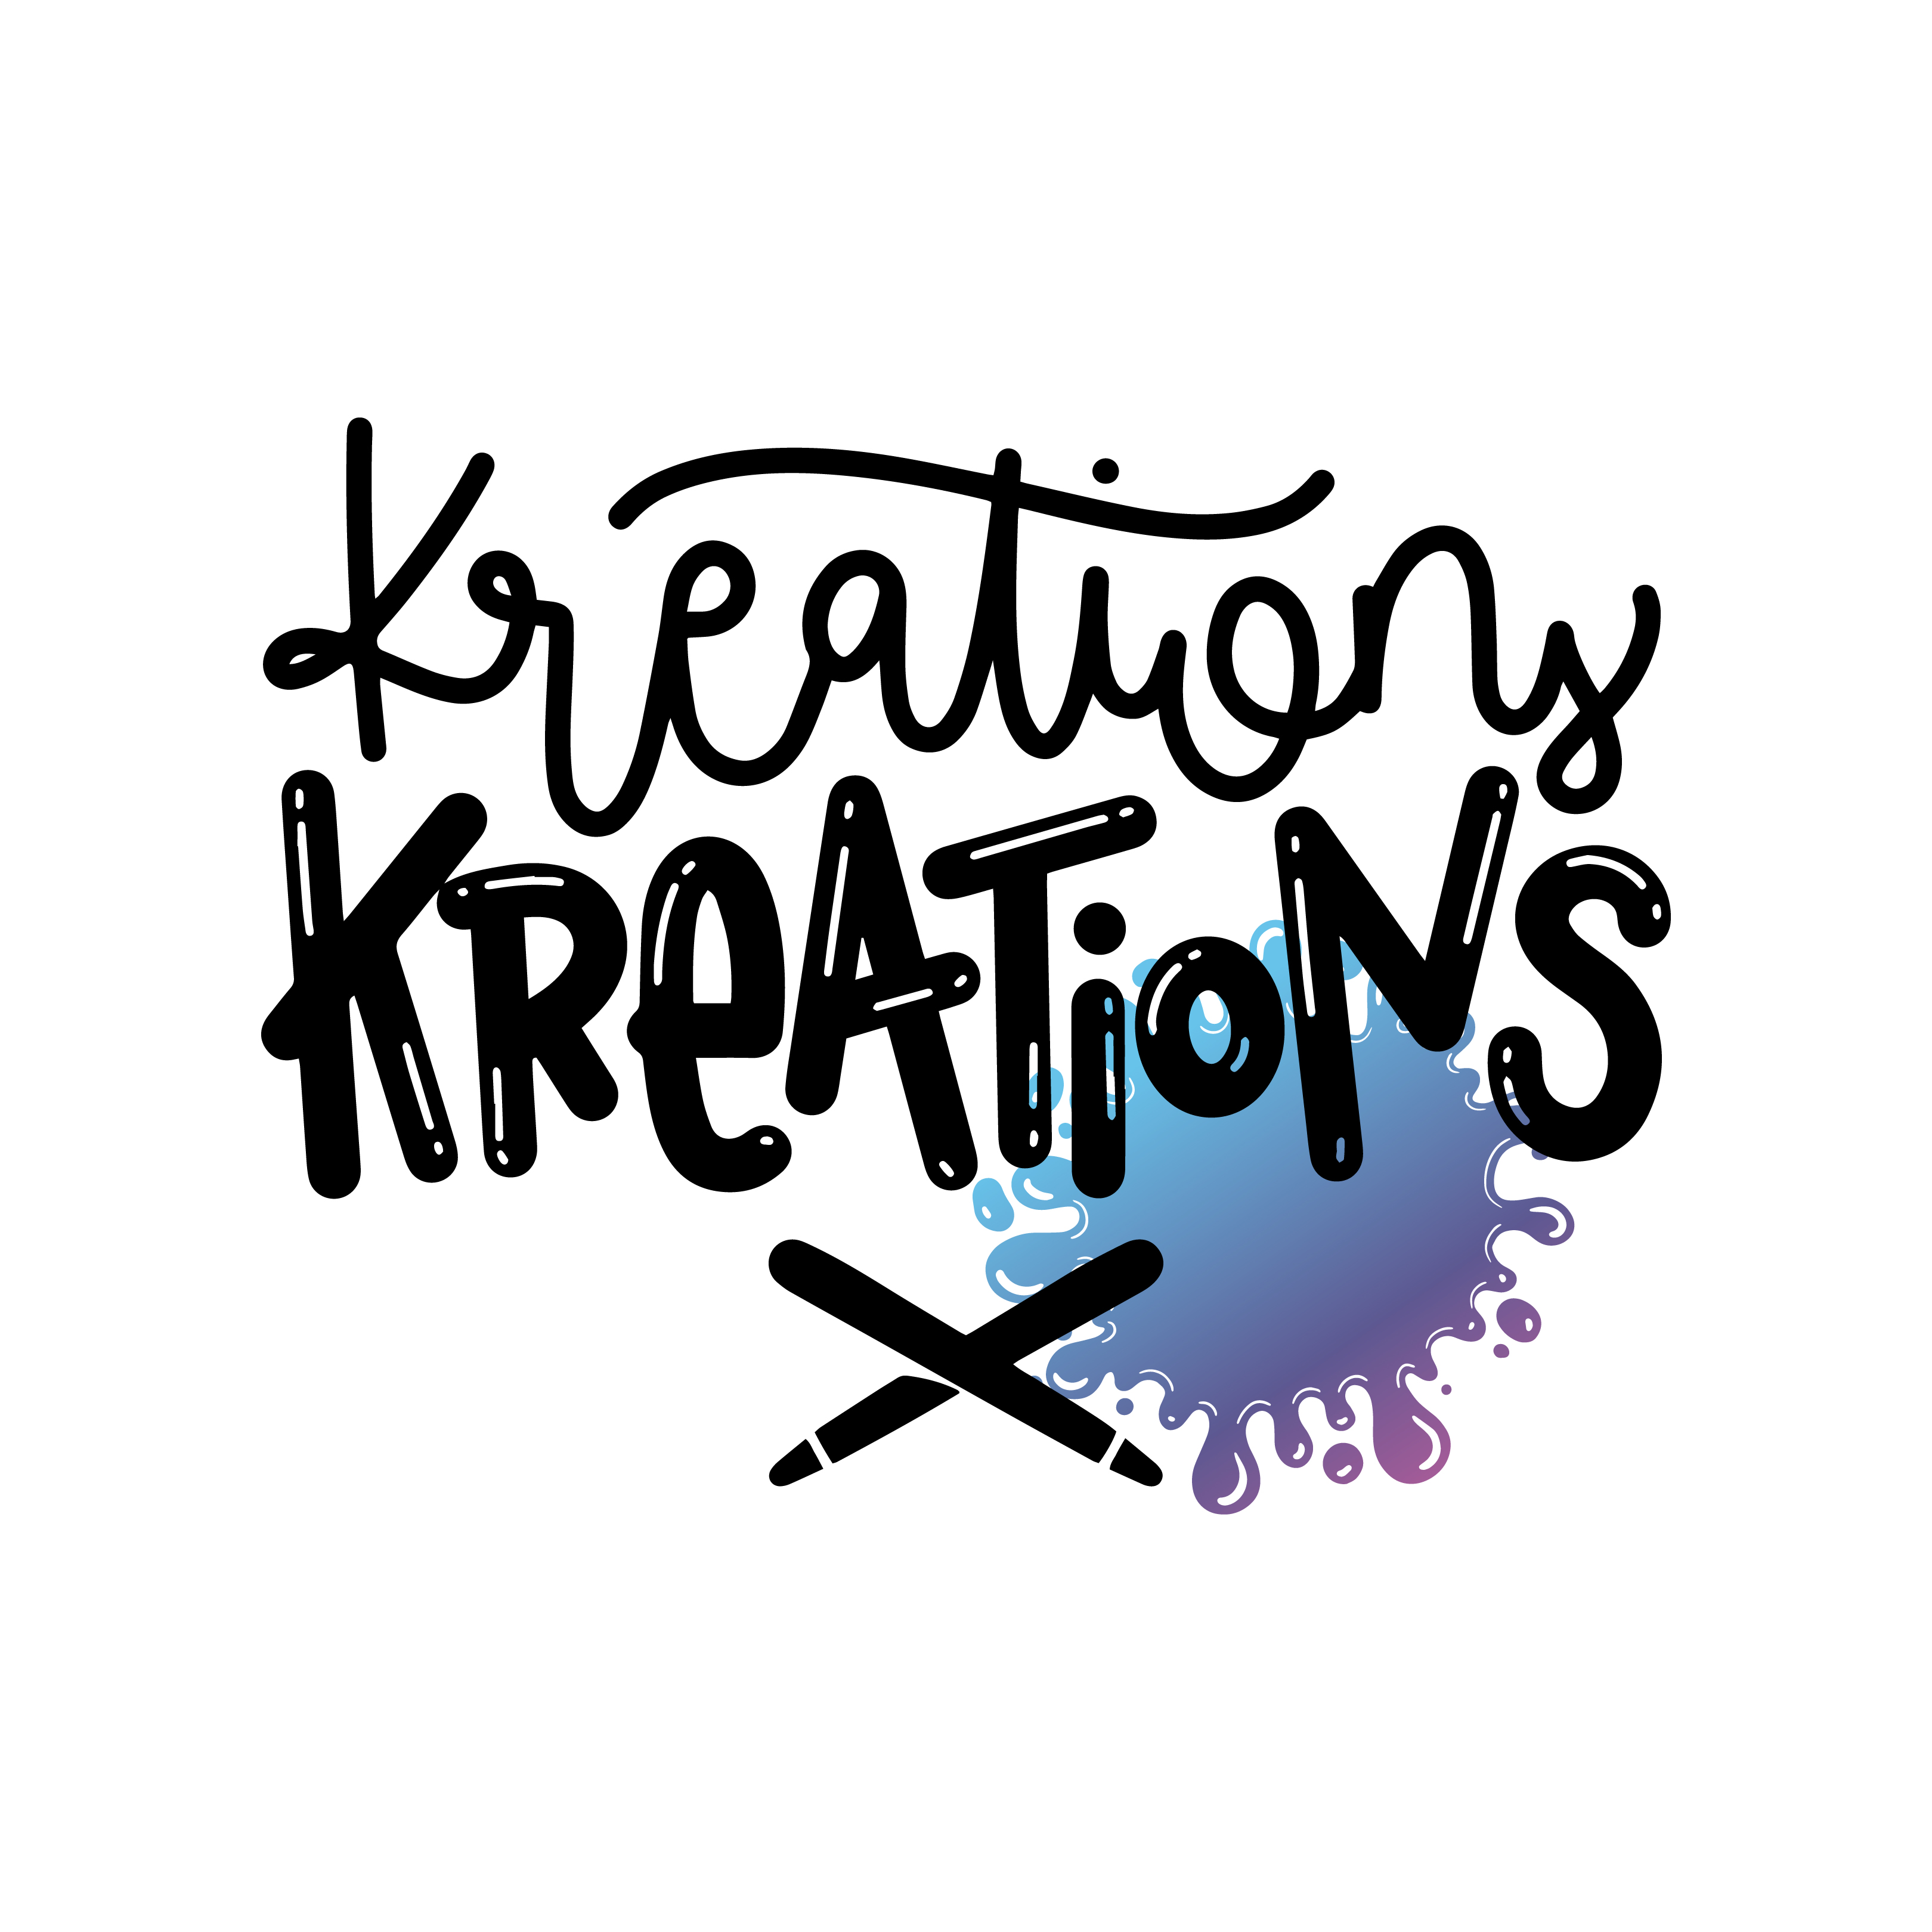 KreationsKreations's profile picture